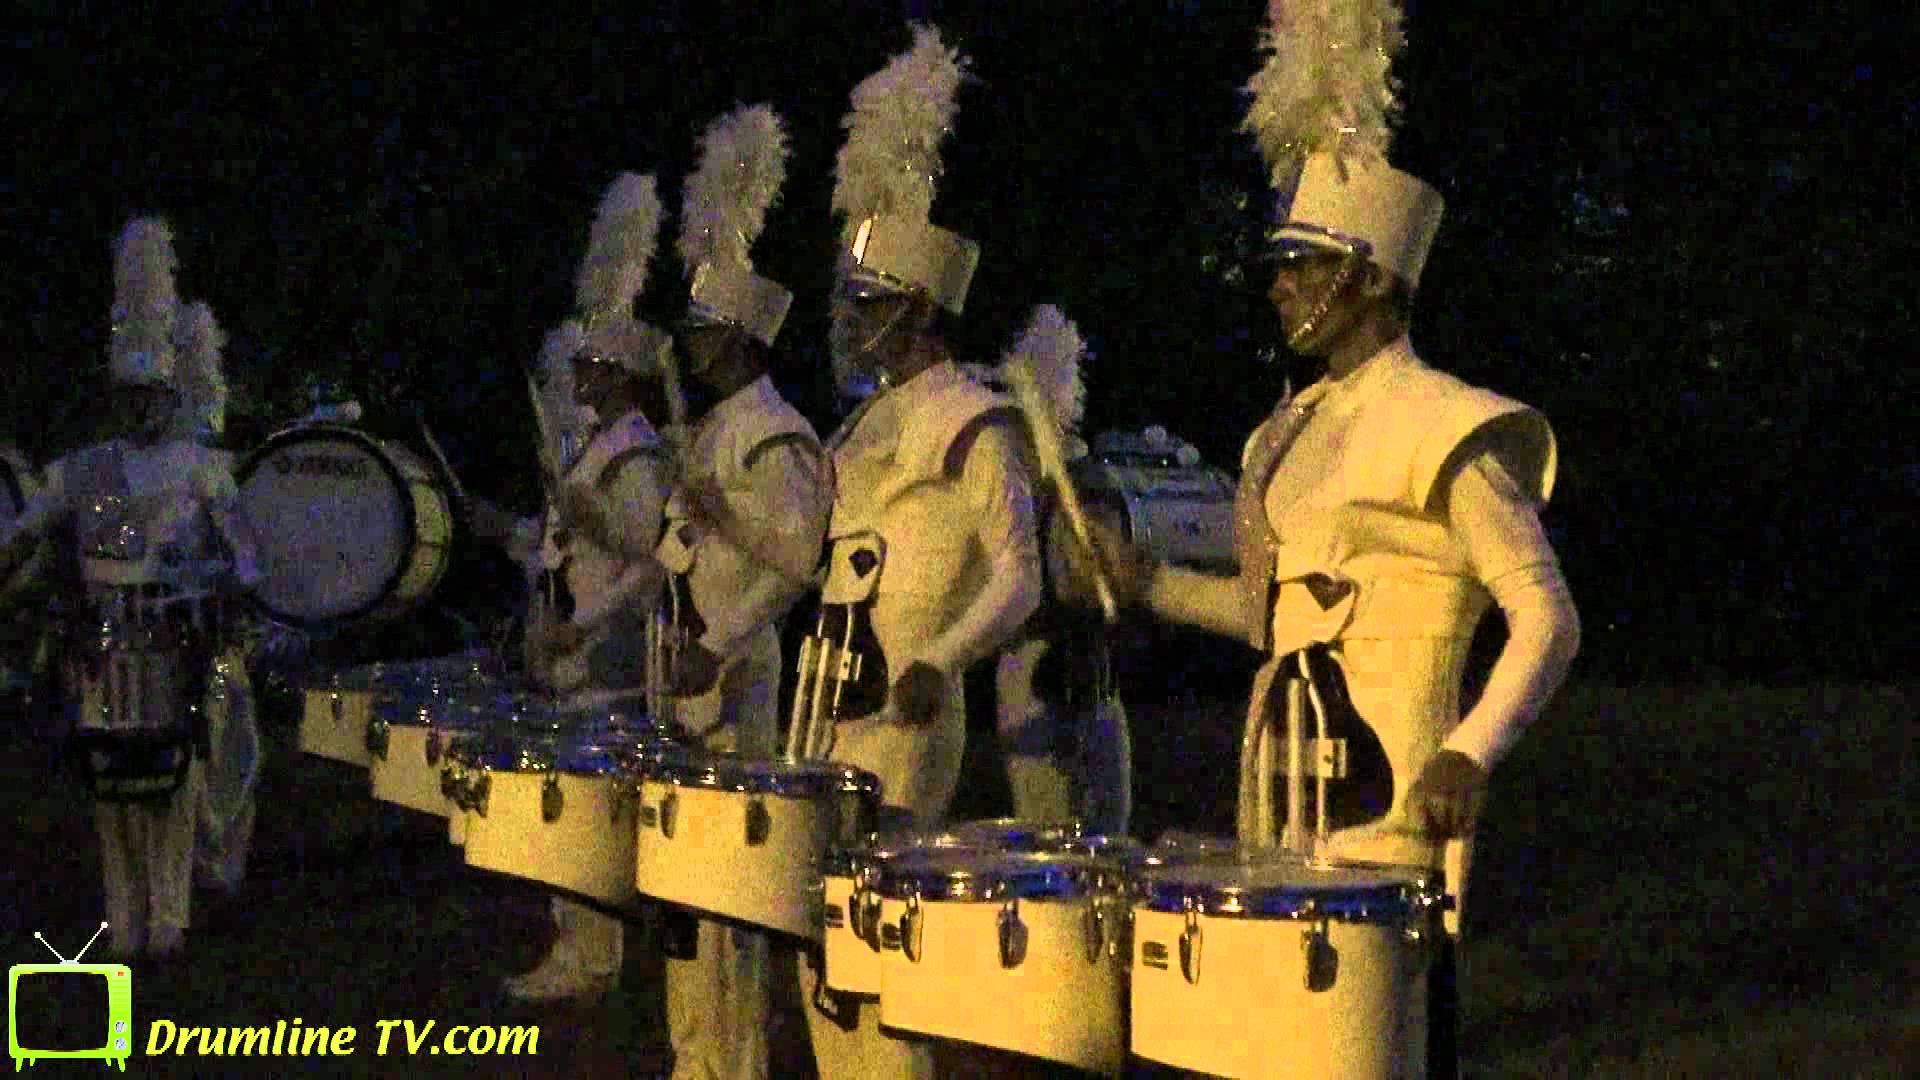 Carolina Crown Drumline 2012 – Pageant of Drums Show – Michigan City, Indiana 6-30-2012